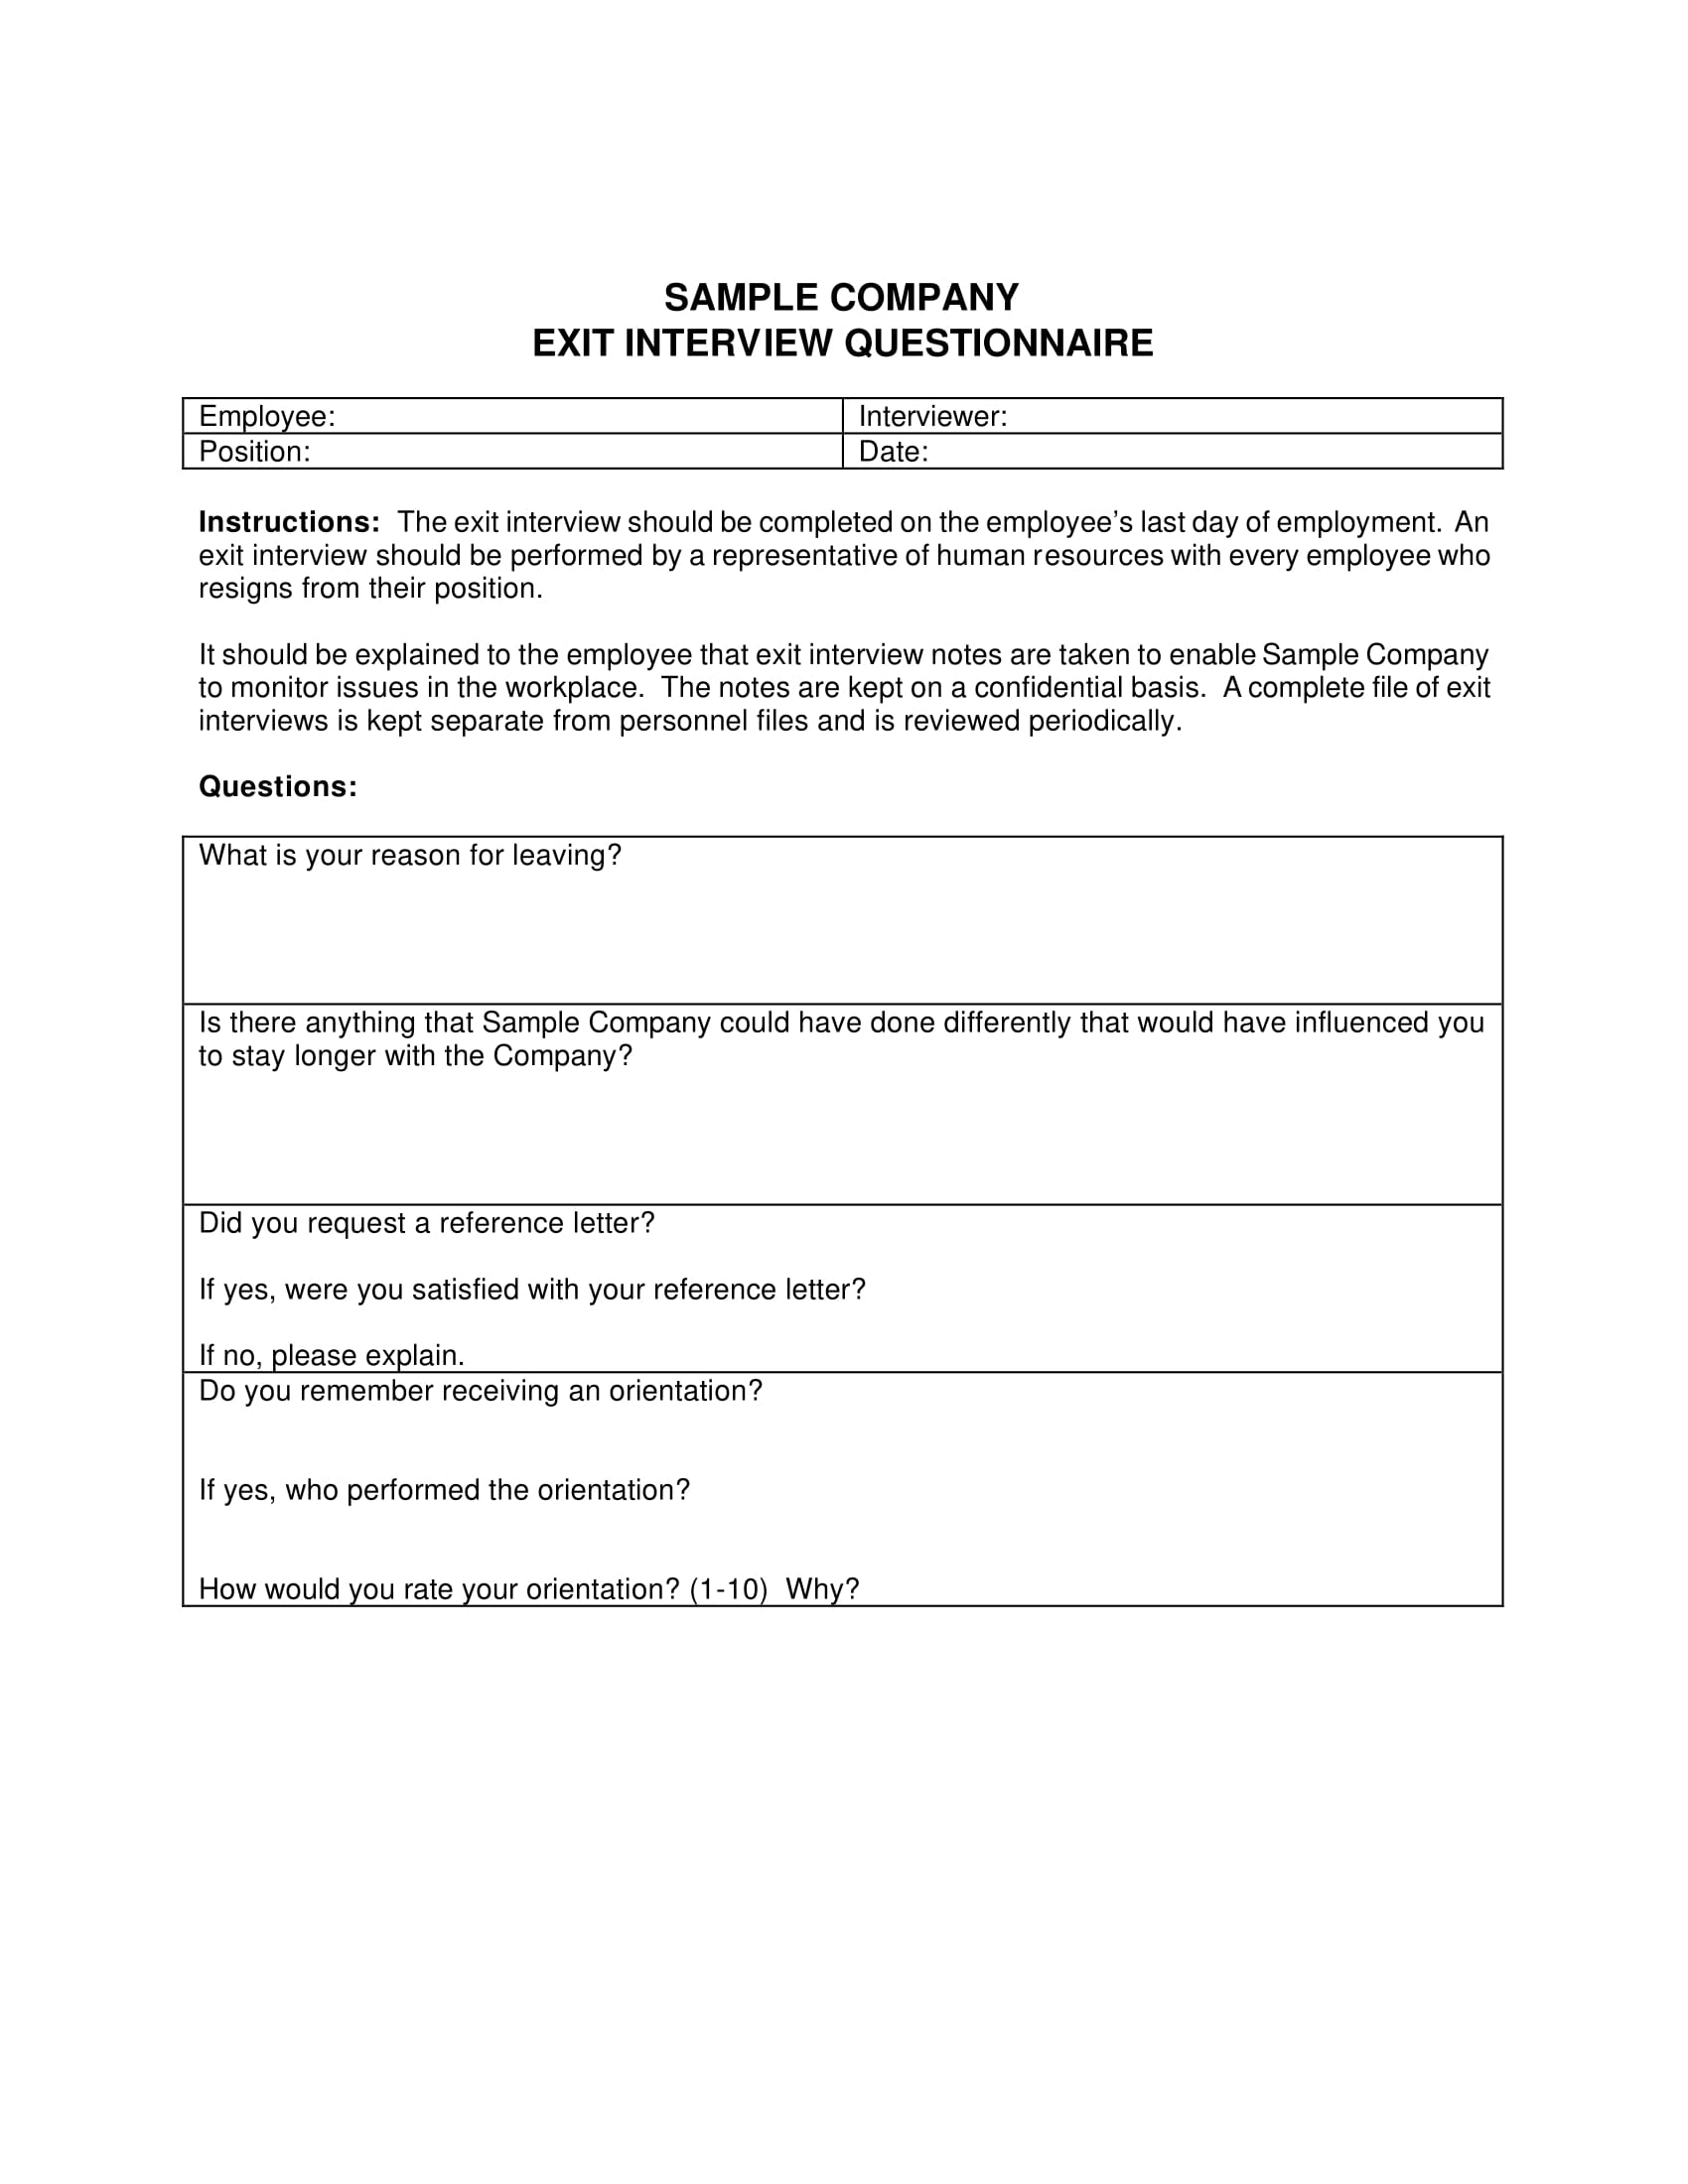 company exit interview questionnaire